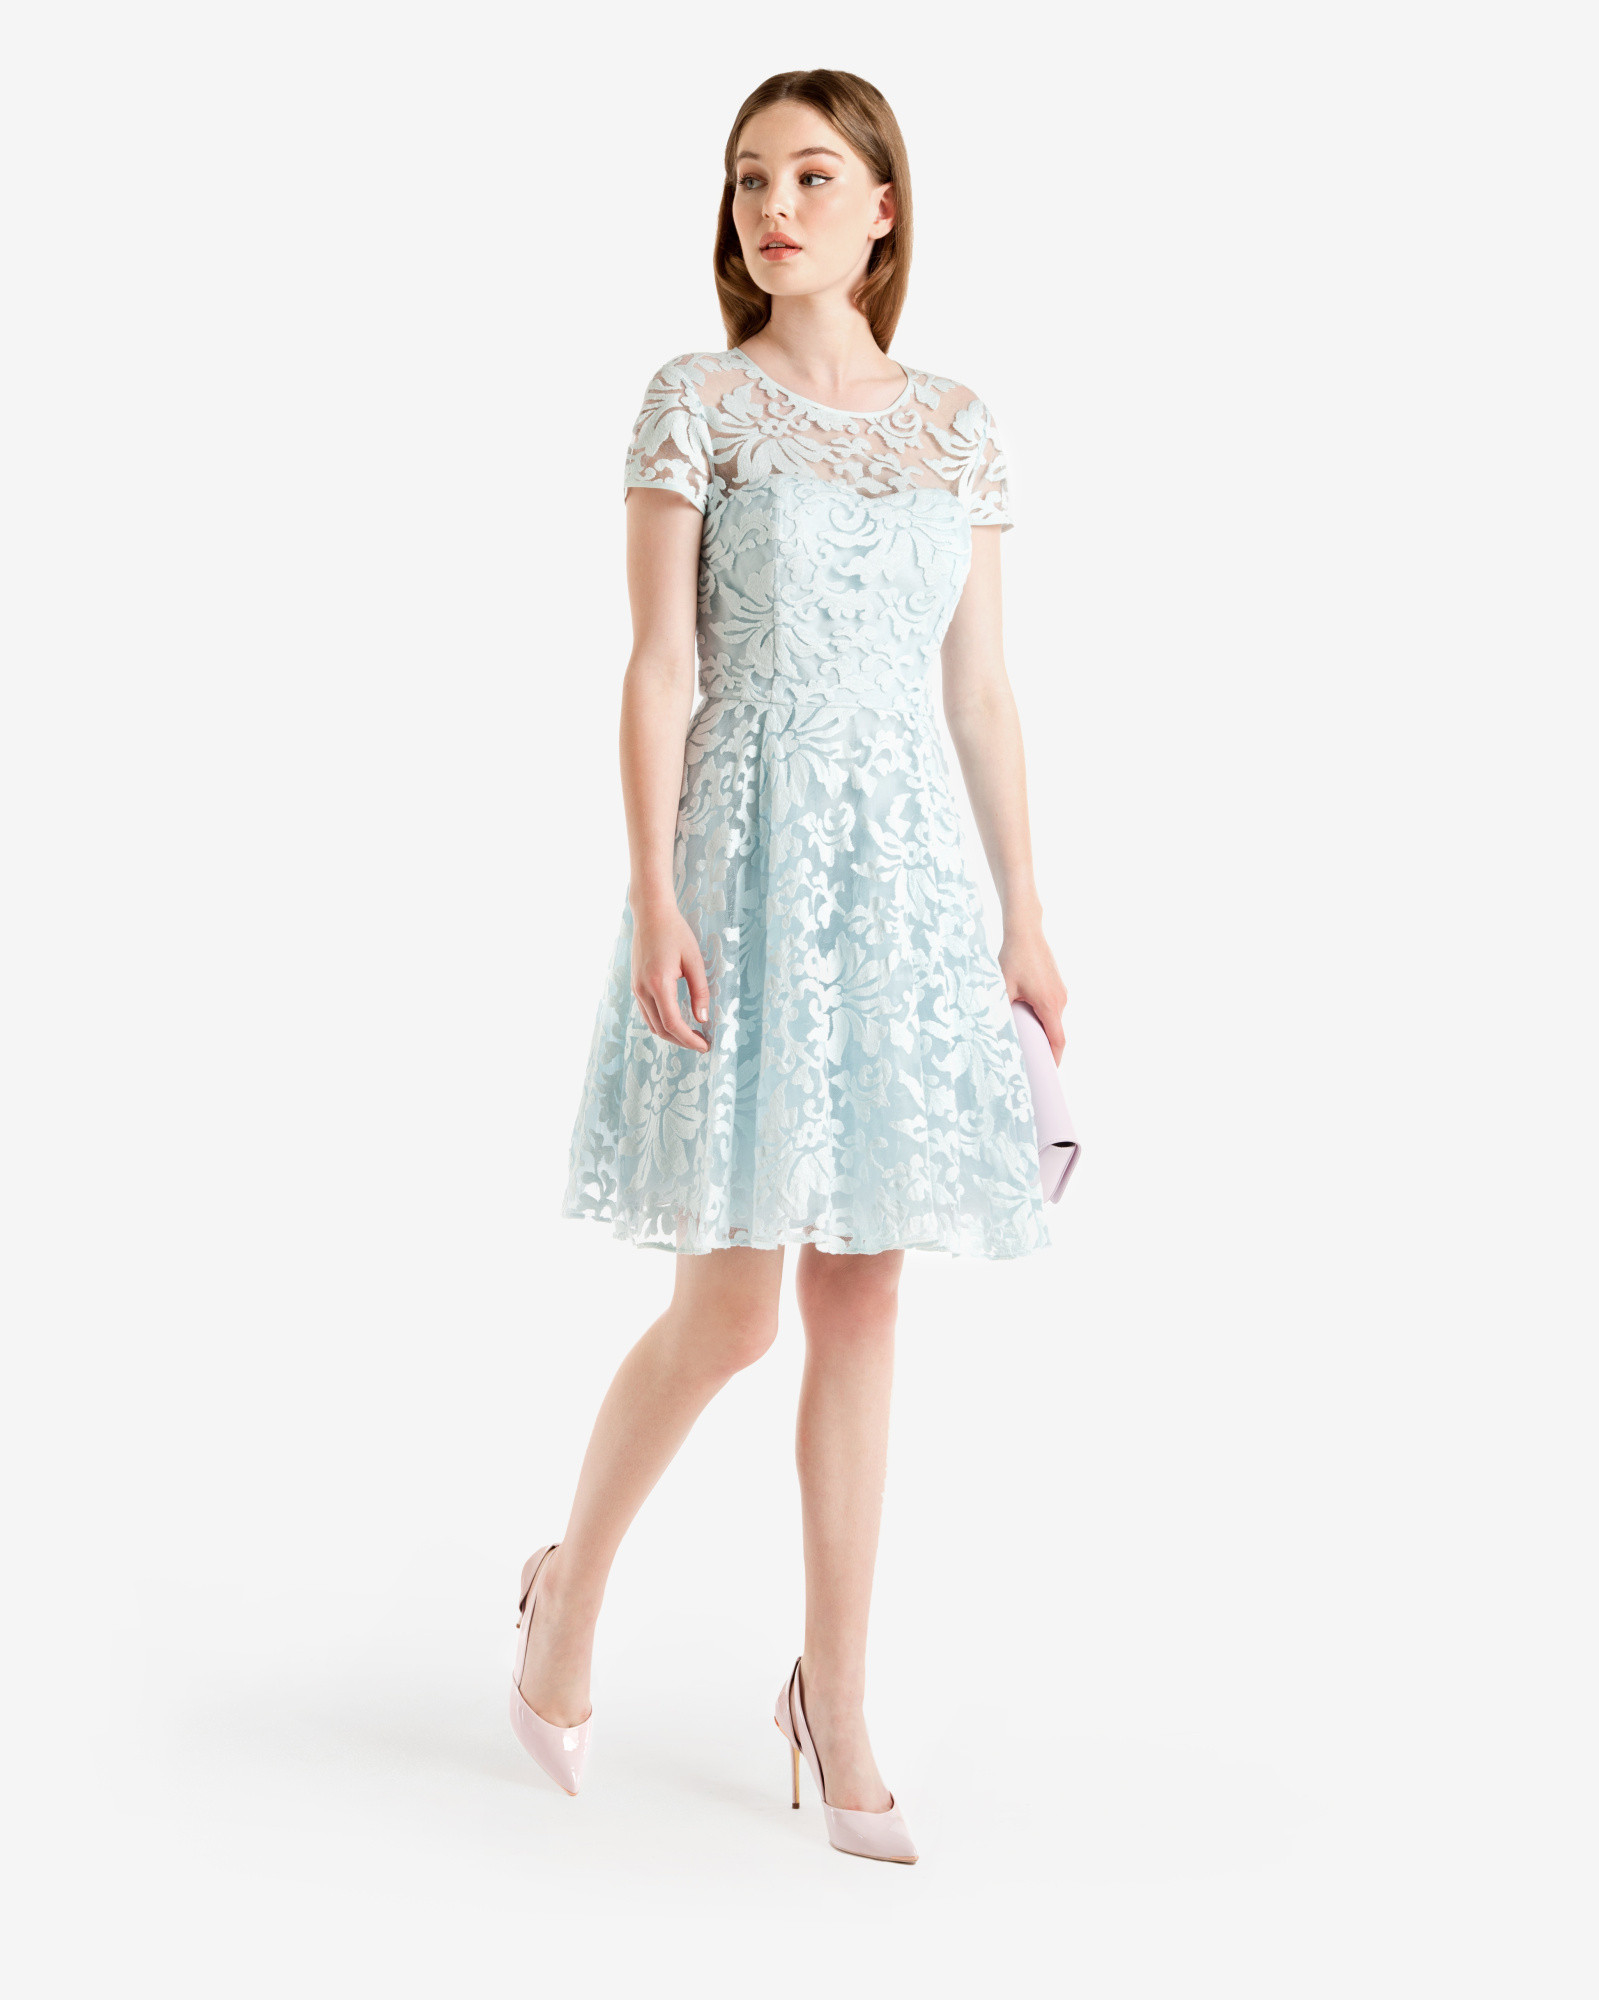 074be2dc4f38e0 Lyst - Ted Baker Floral Lace Dress in Blue